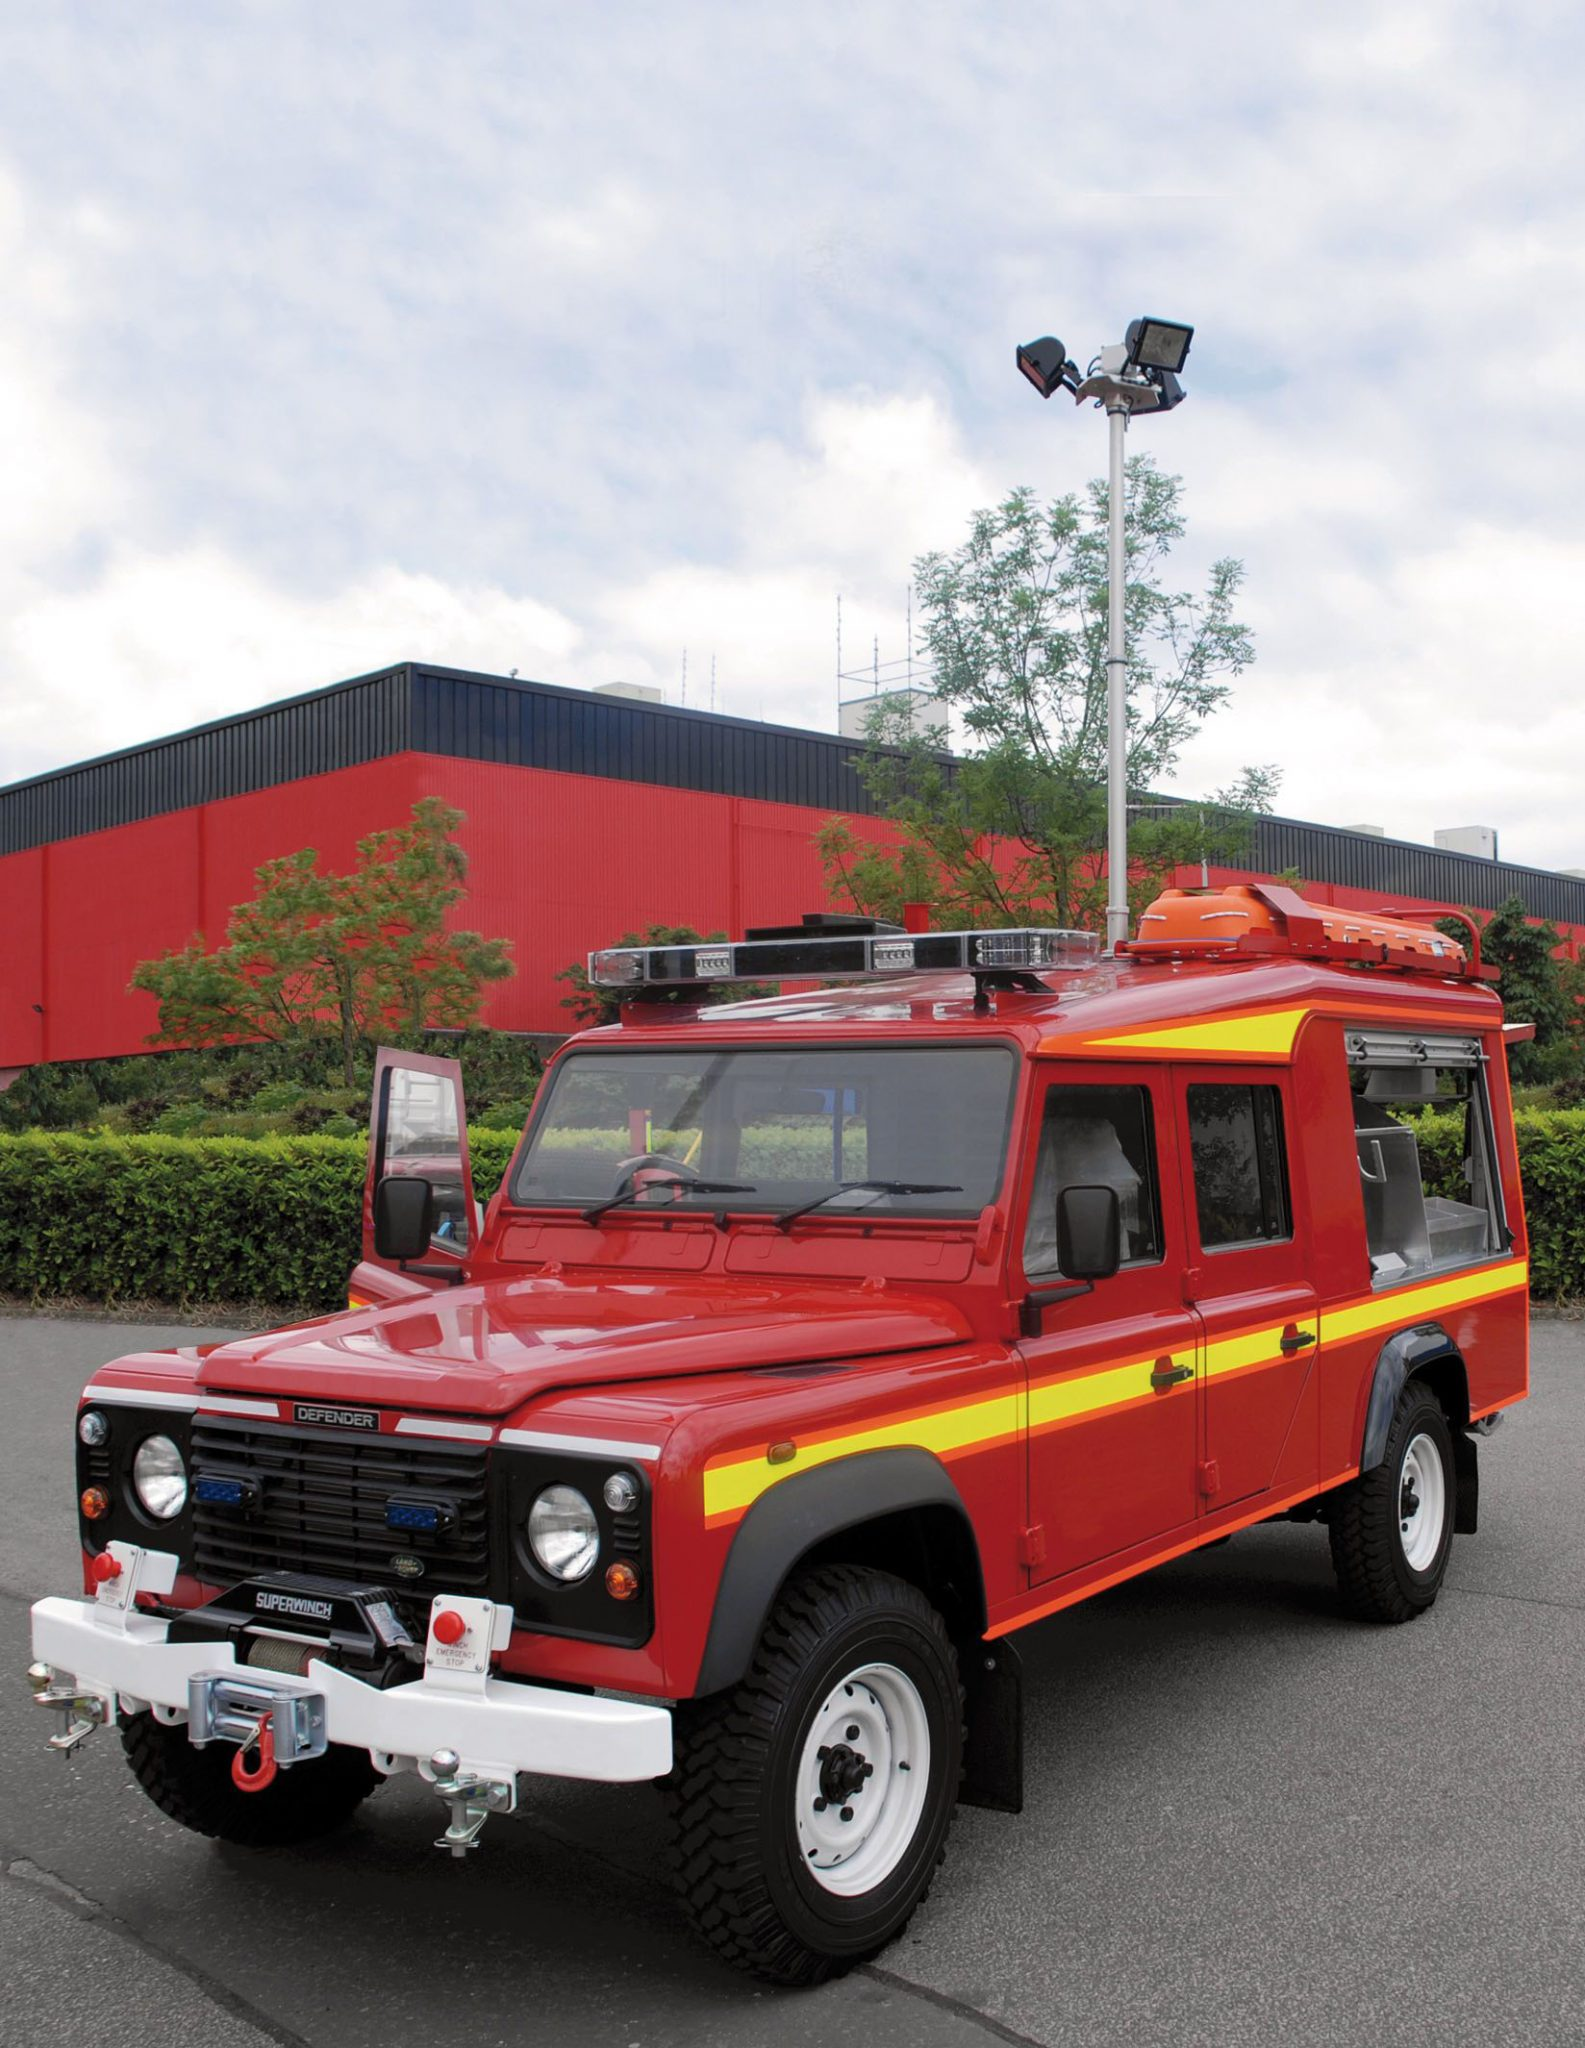 TF 200E NT with 3 x 500W HLG on Defender Jeep (Lage resolutie)